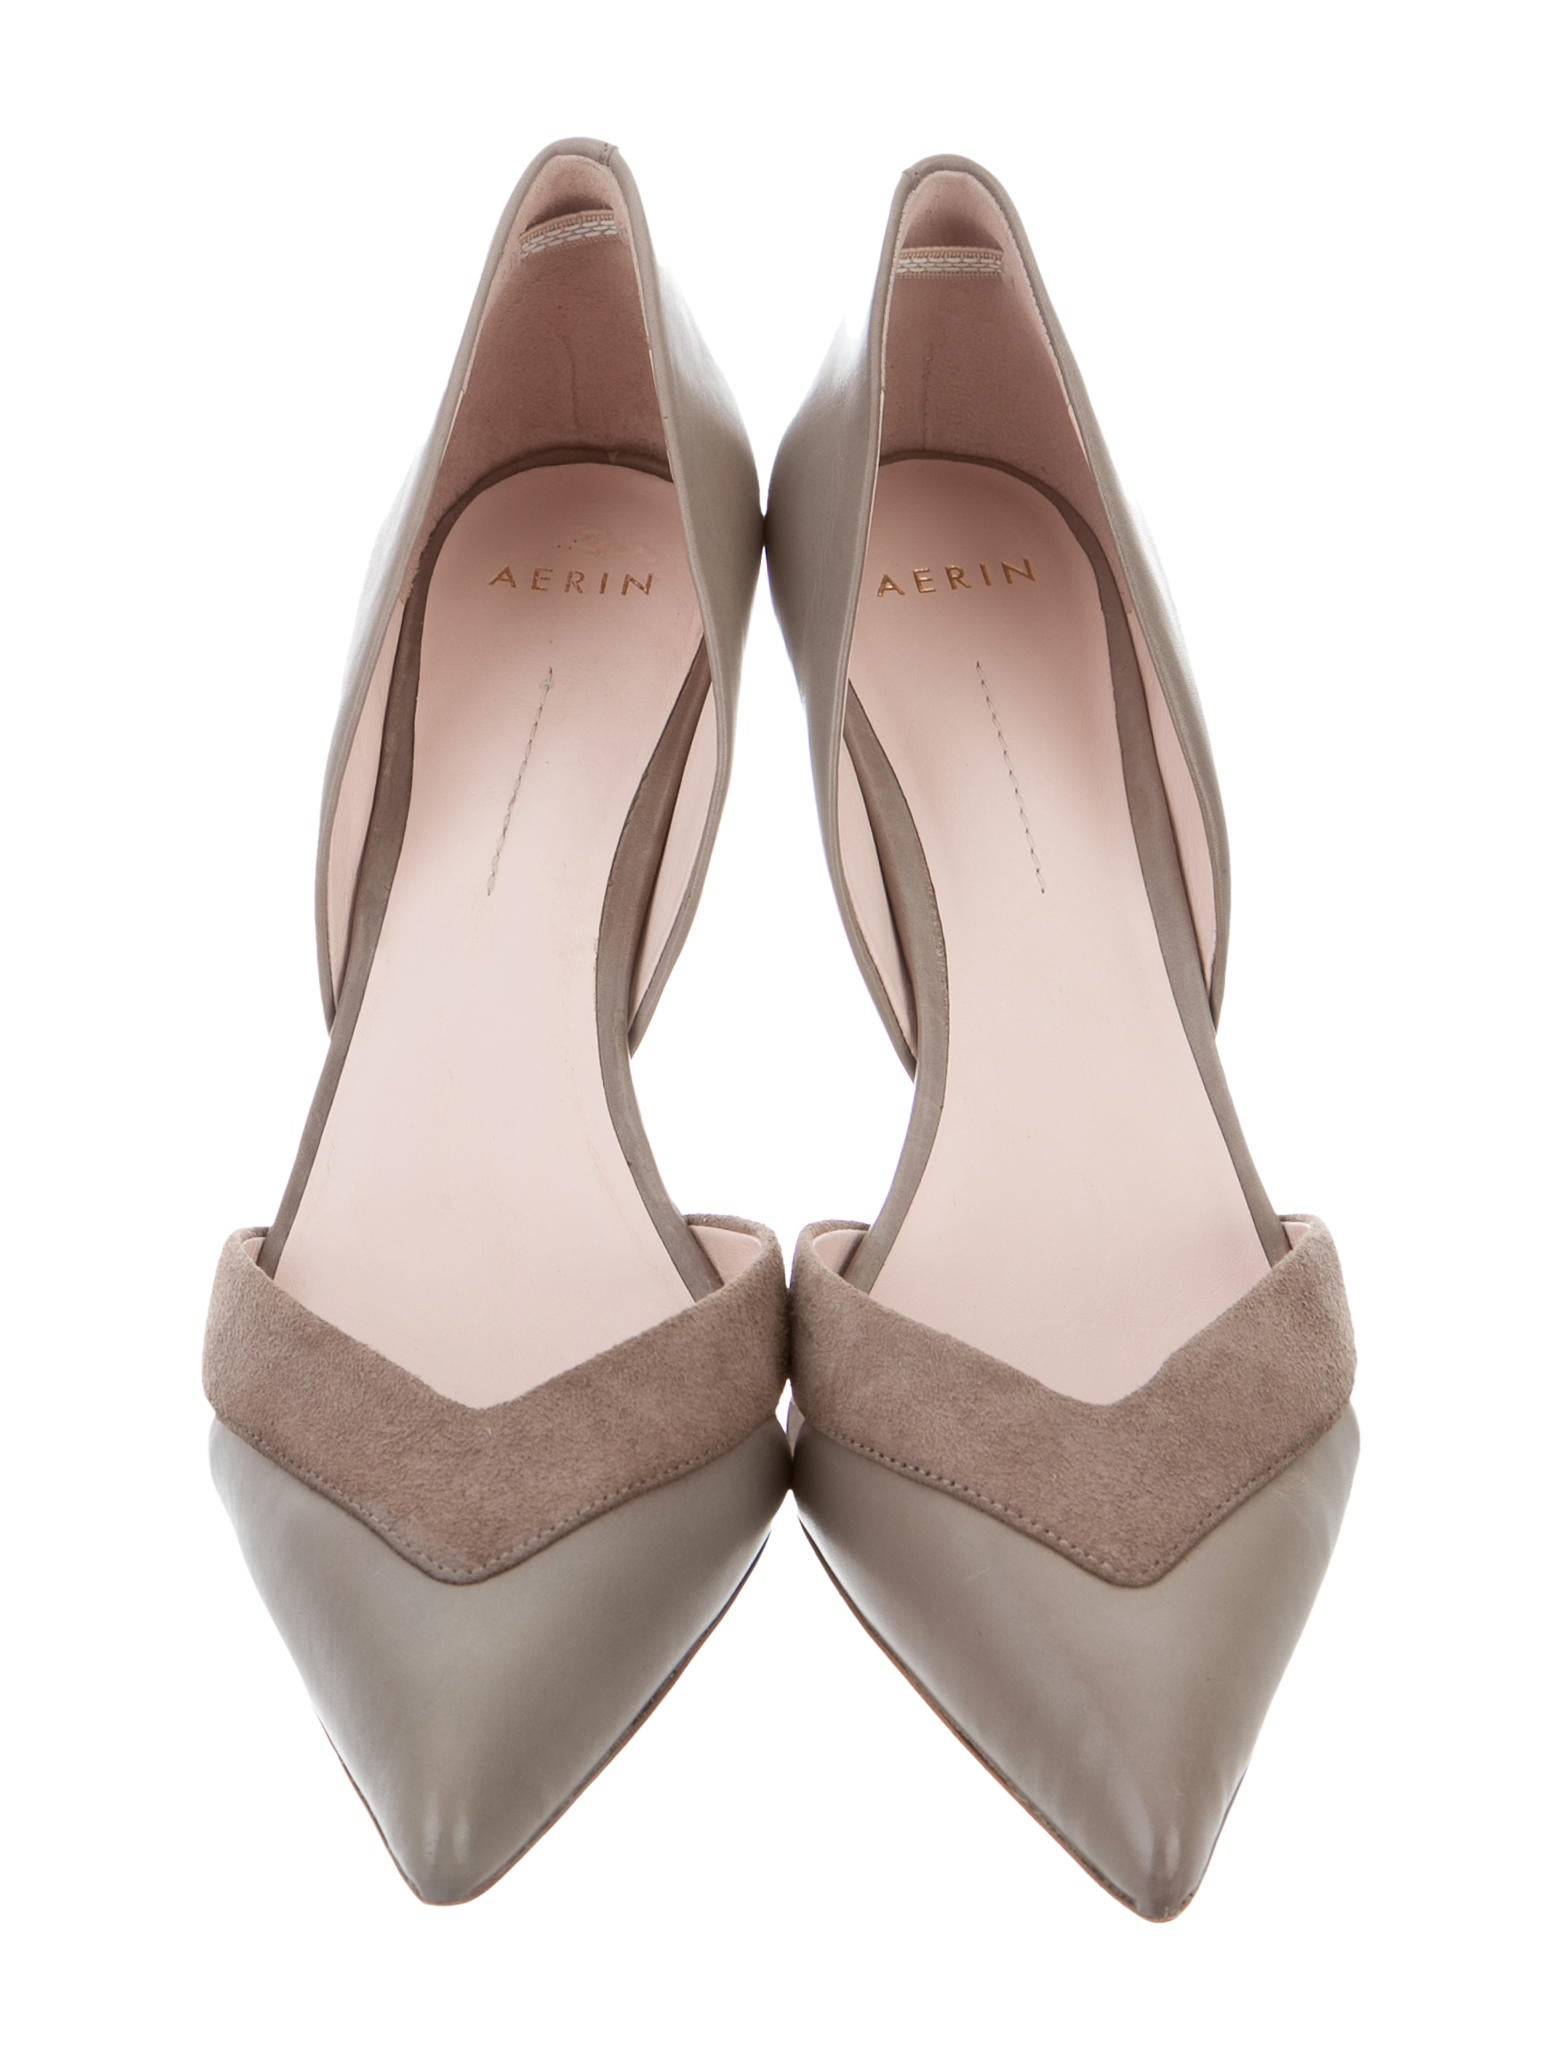 AERIN Elaina Pointed-Toe Pumps w/ Tags - Shoes